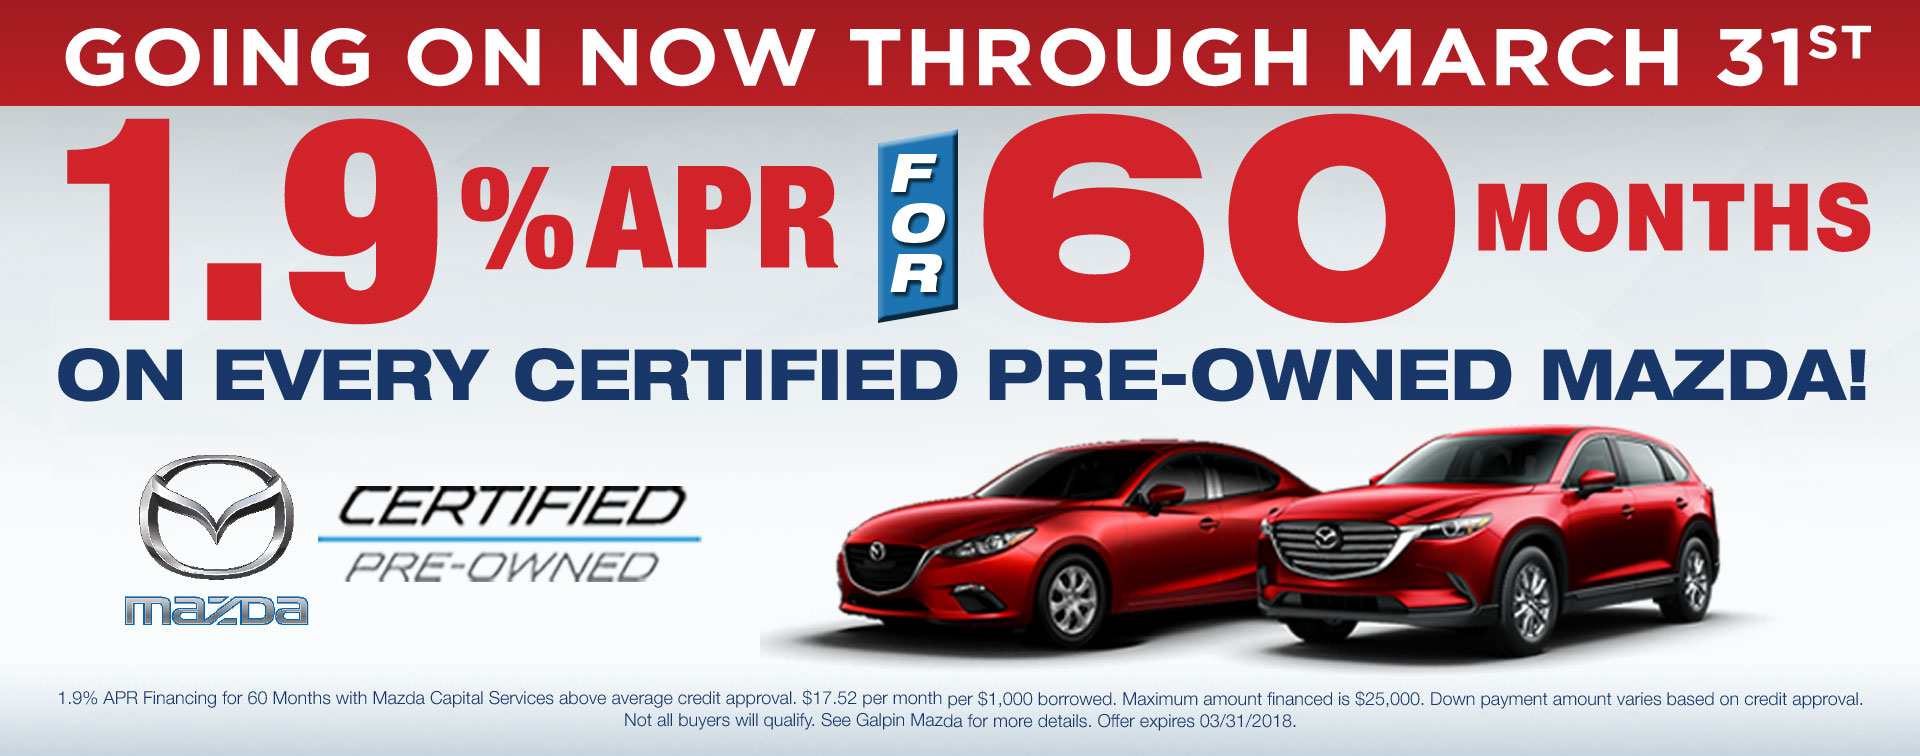 New Mazda Specials Santa Clarita Van Nuys Near Los Angeles CA - Mazda lease offer